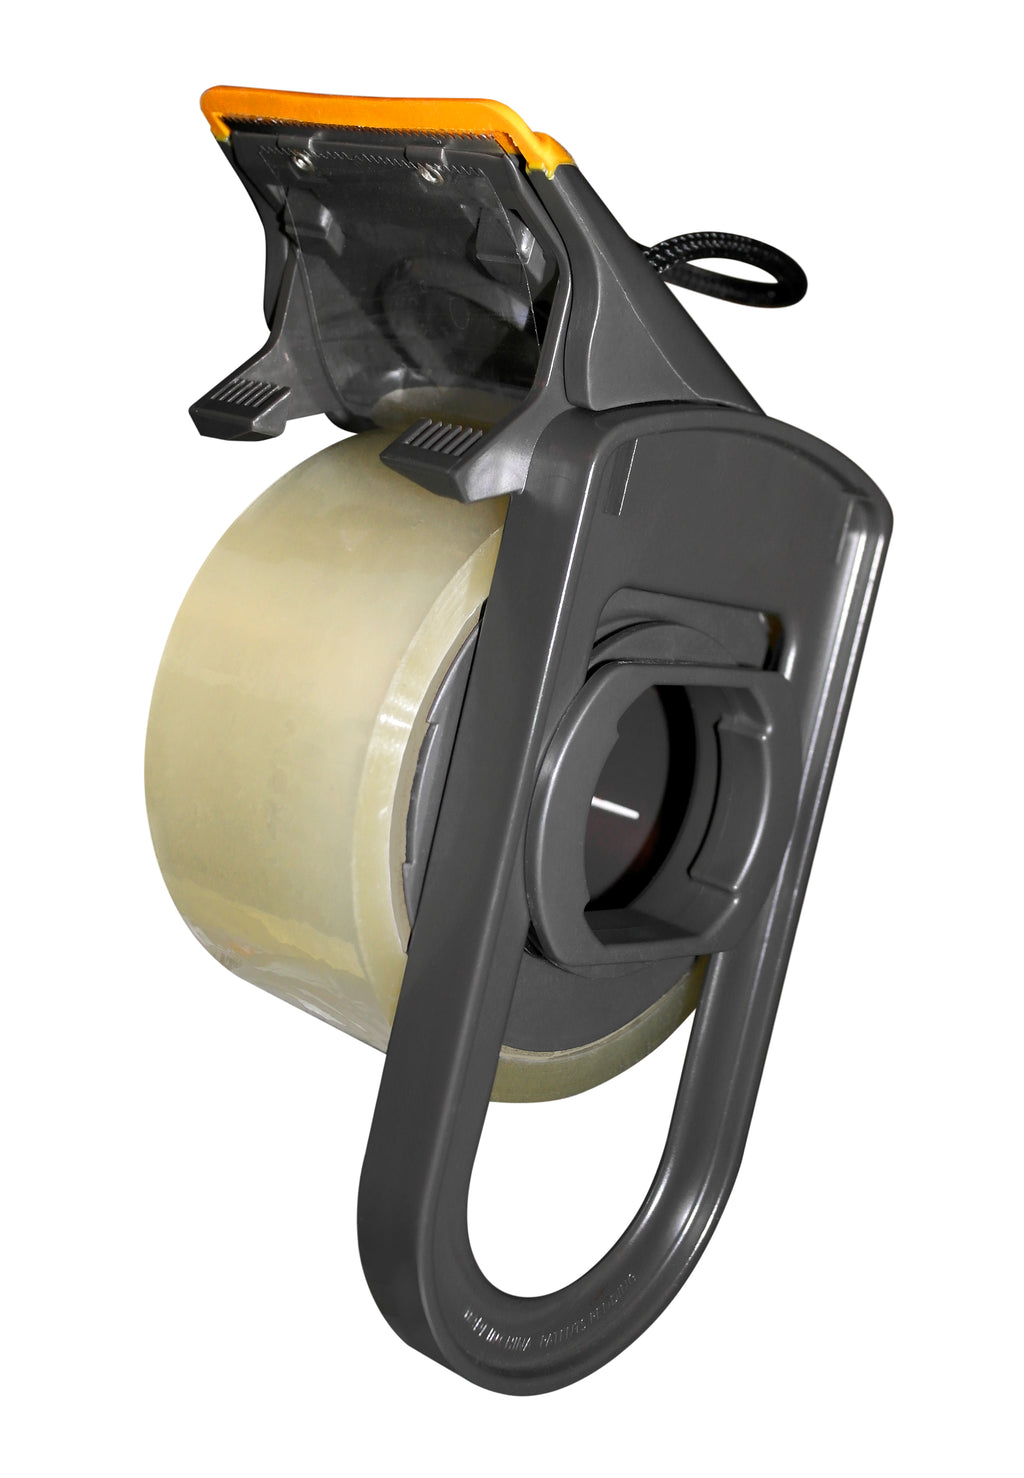 Tape Tearer - The Universal Contractor Grade Tape Dispenser with 6 rolls of Flex Tape